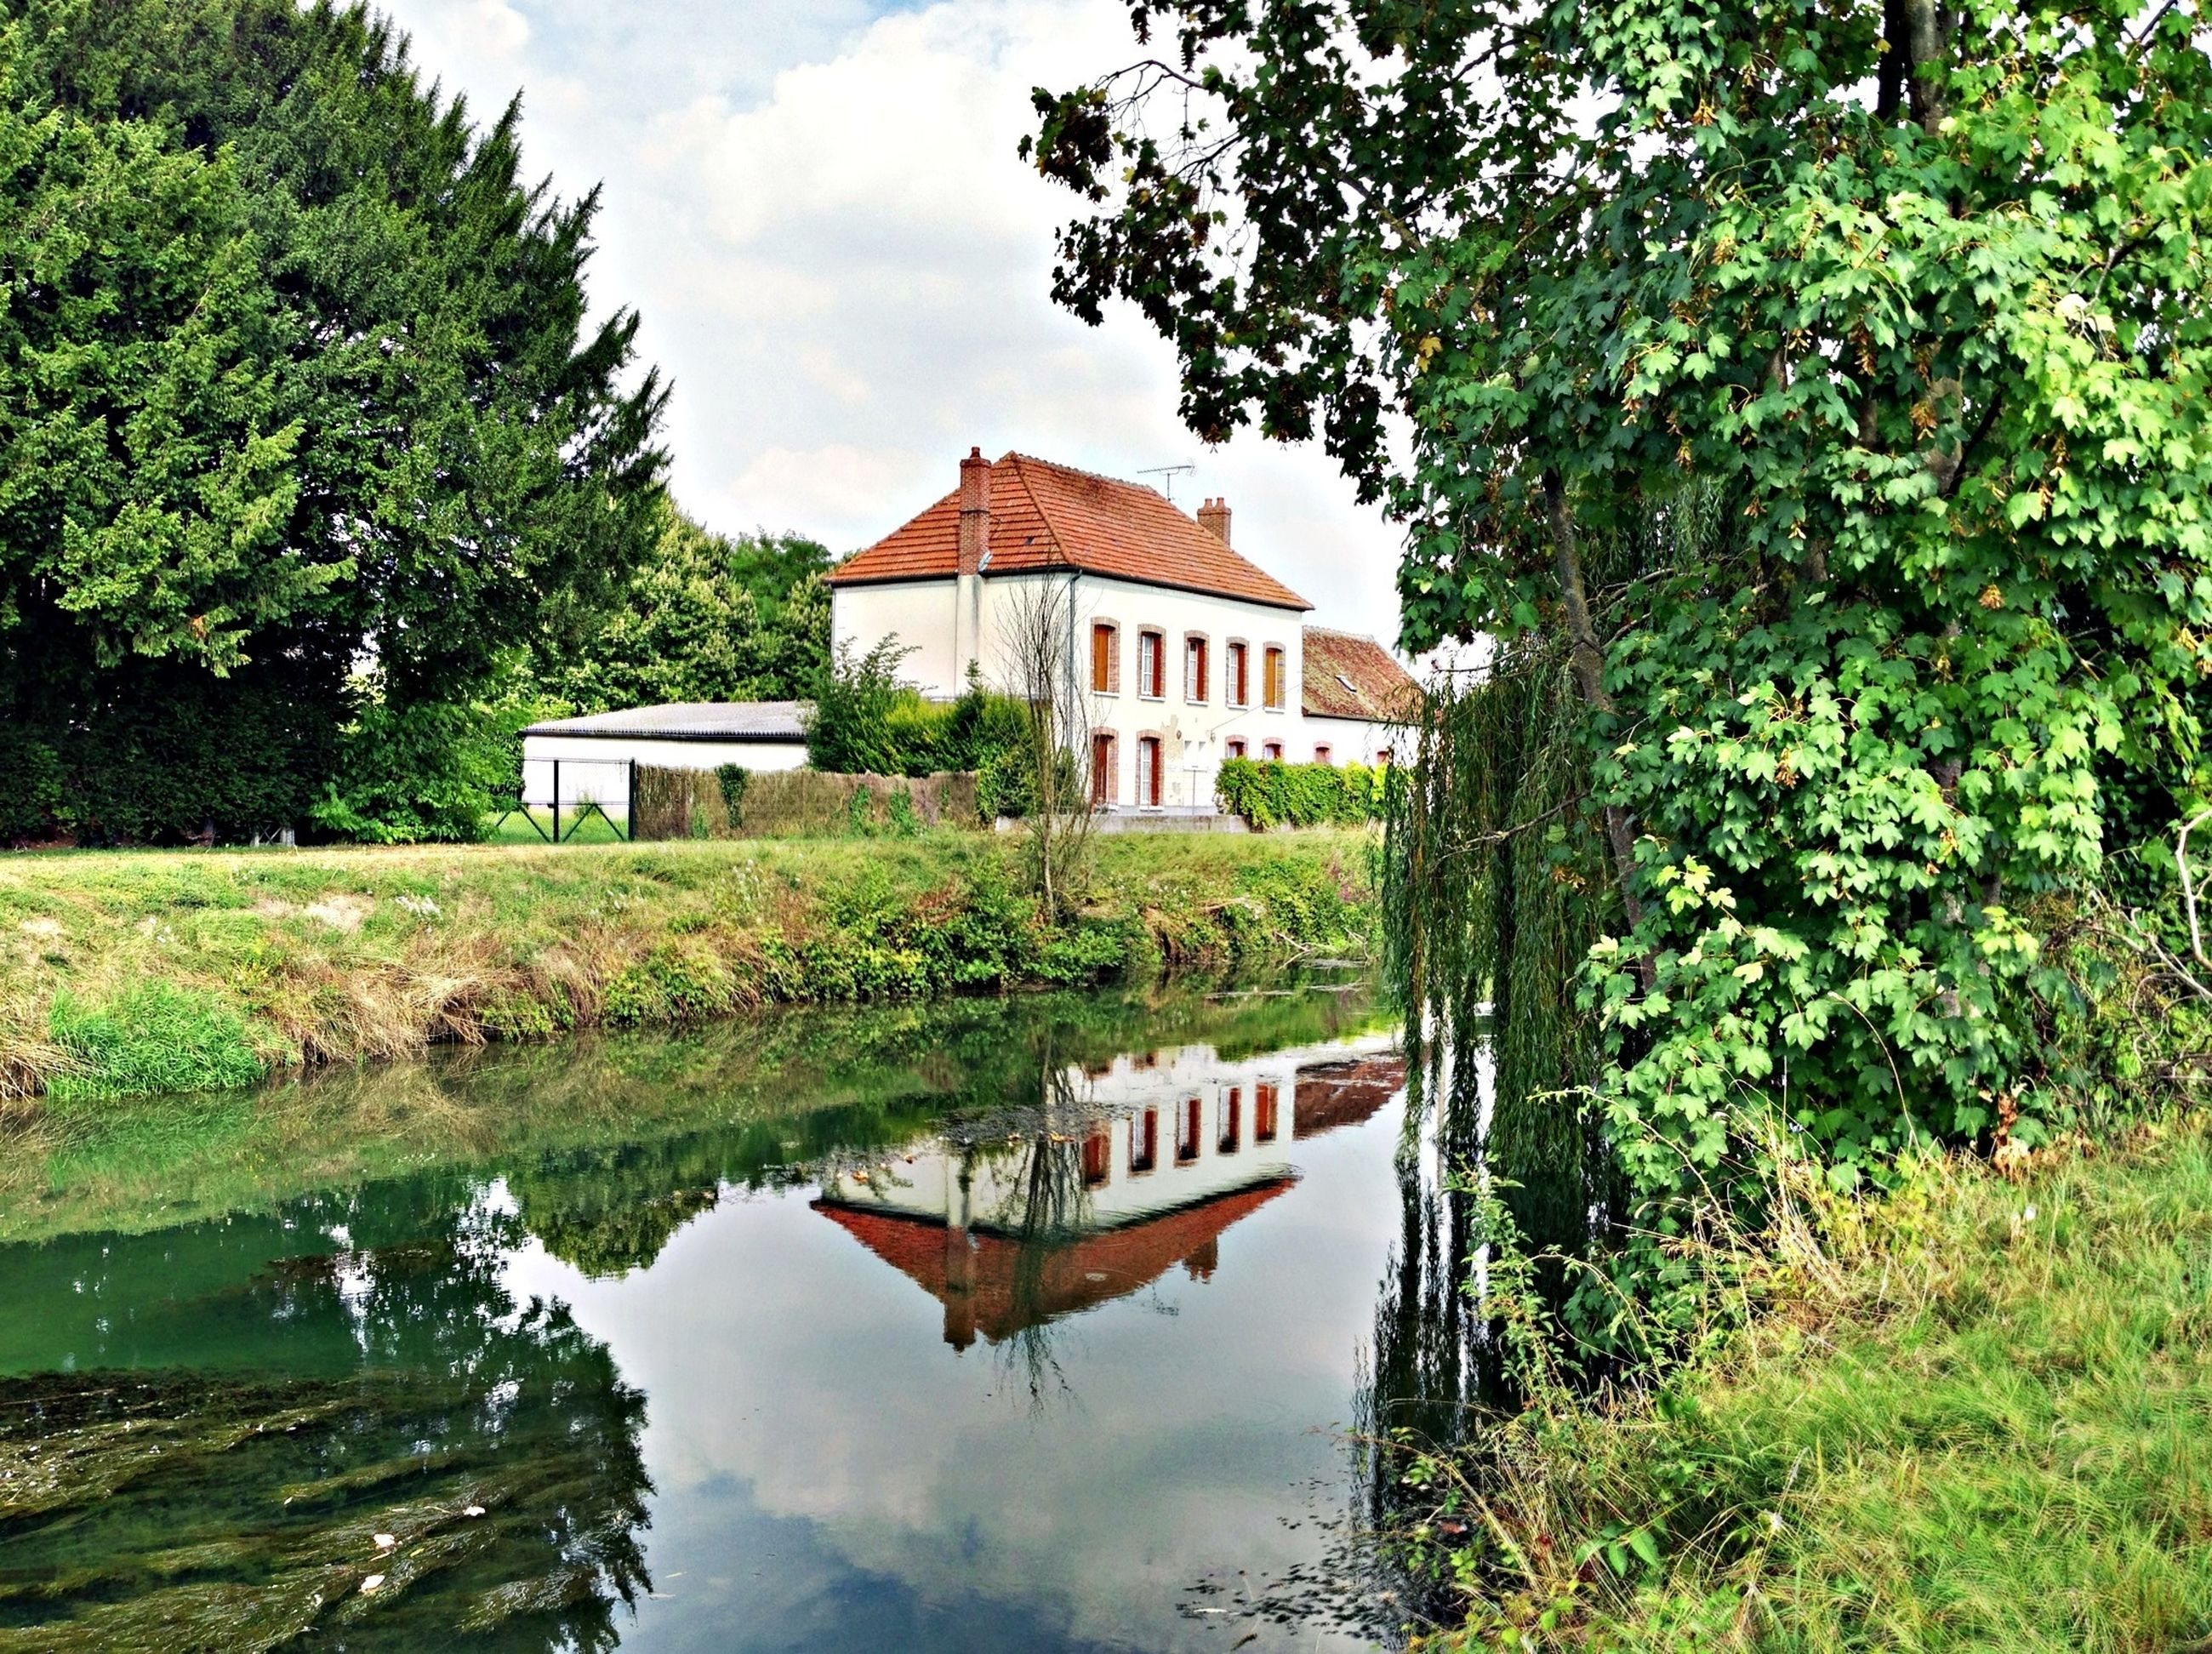 water, tree, architecture, built structure, building exterior, reflection, house, sky, green color, growth, lake, plant, tranquility, waterfront, nature, tranquil scene, canal, pond, day, grass